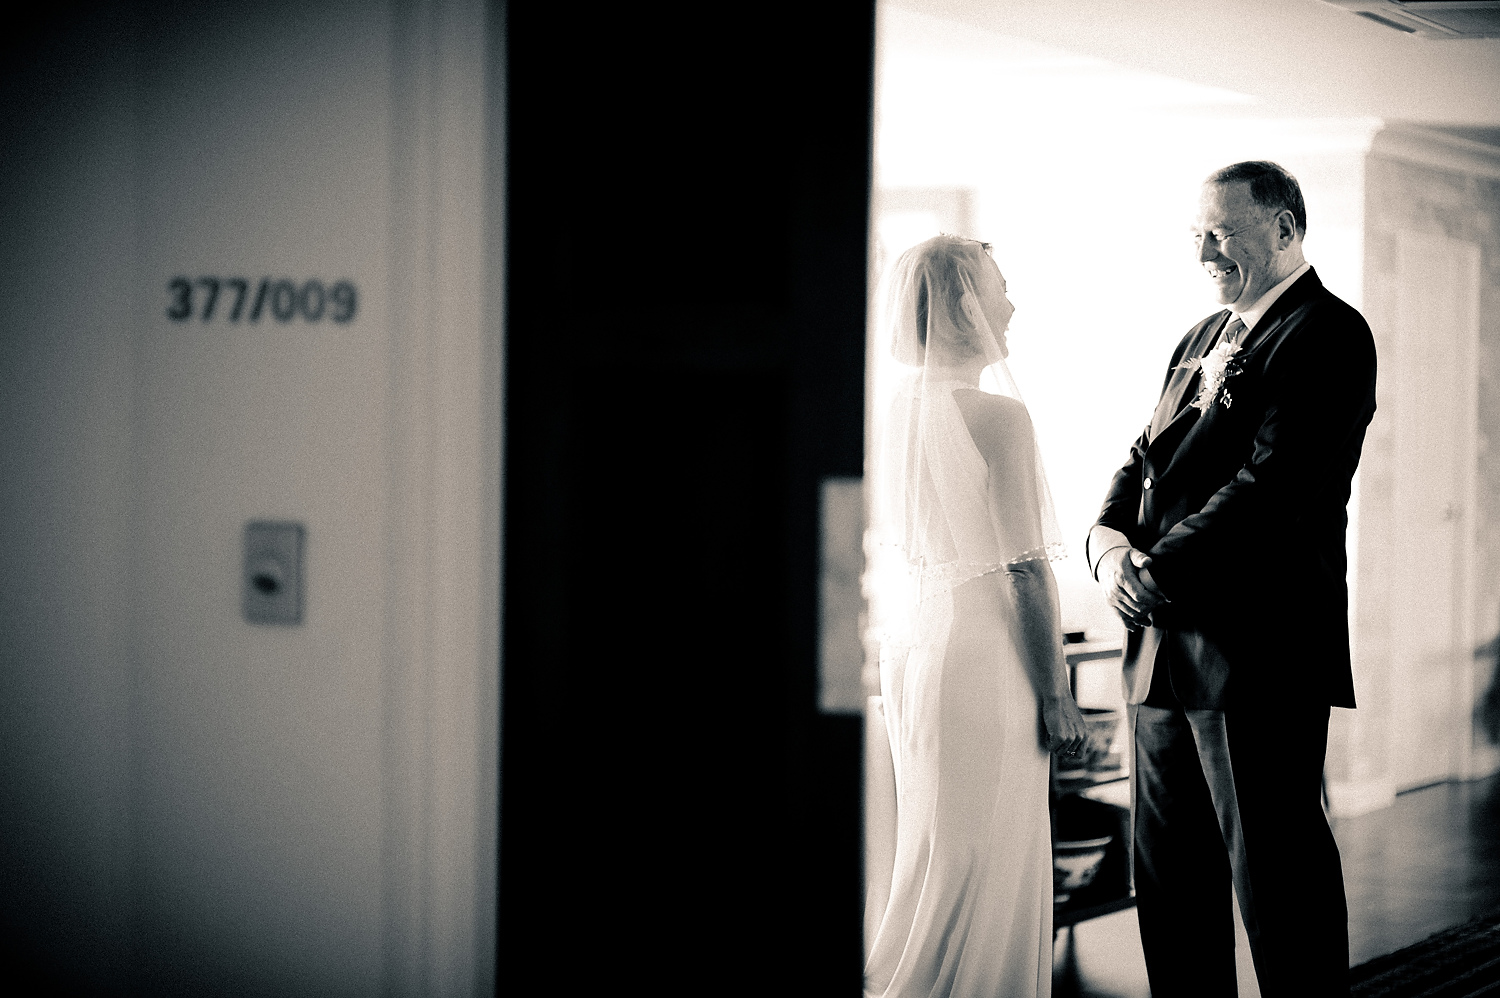 Photo of the Day: Few words before the wedding